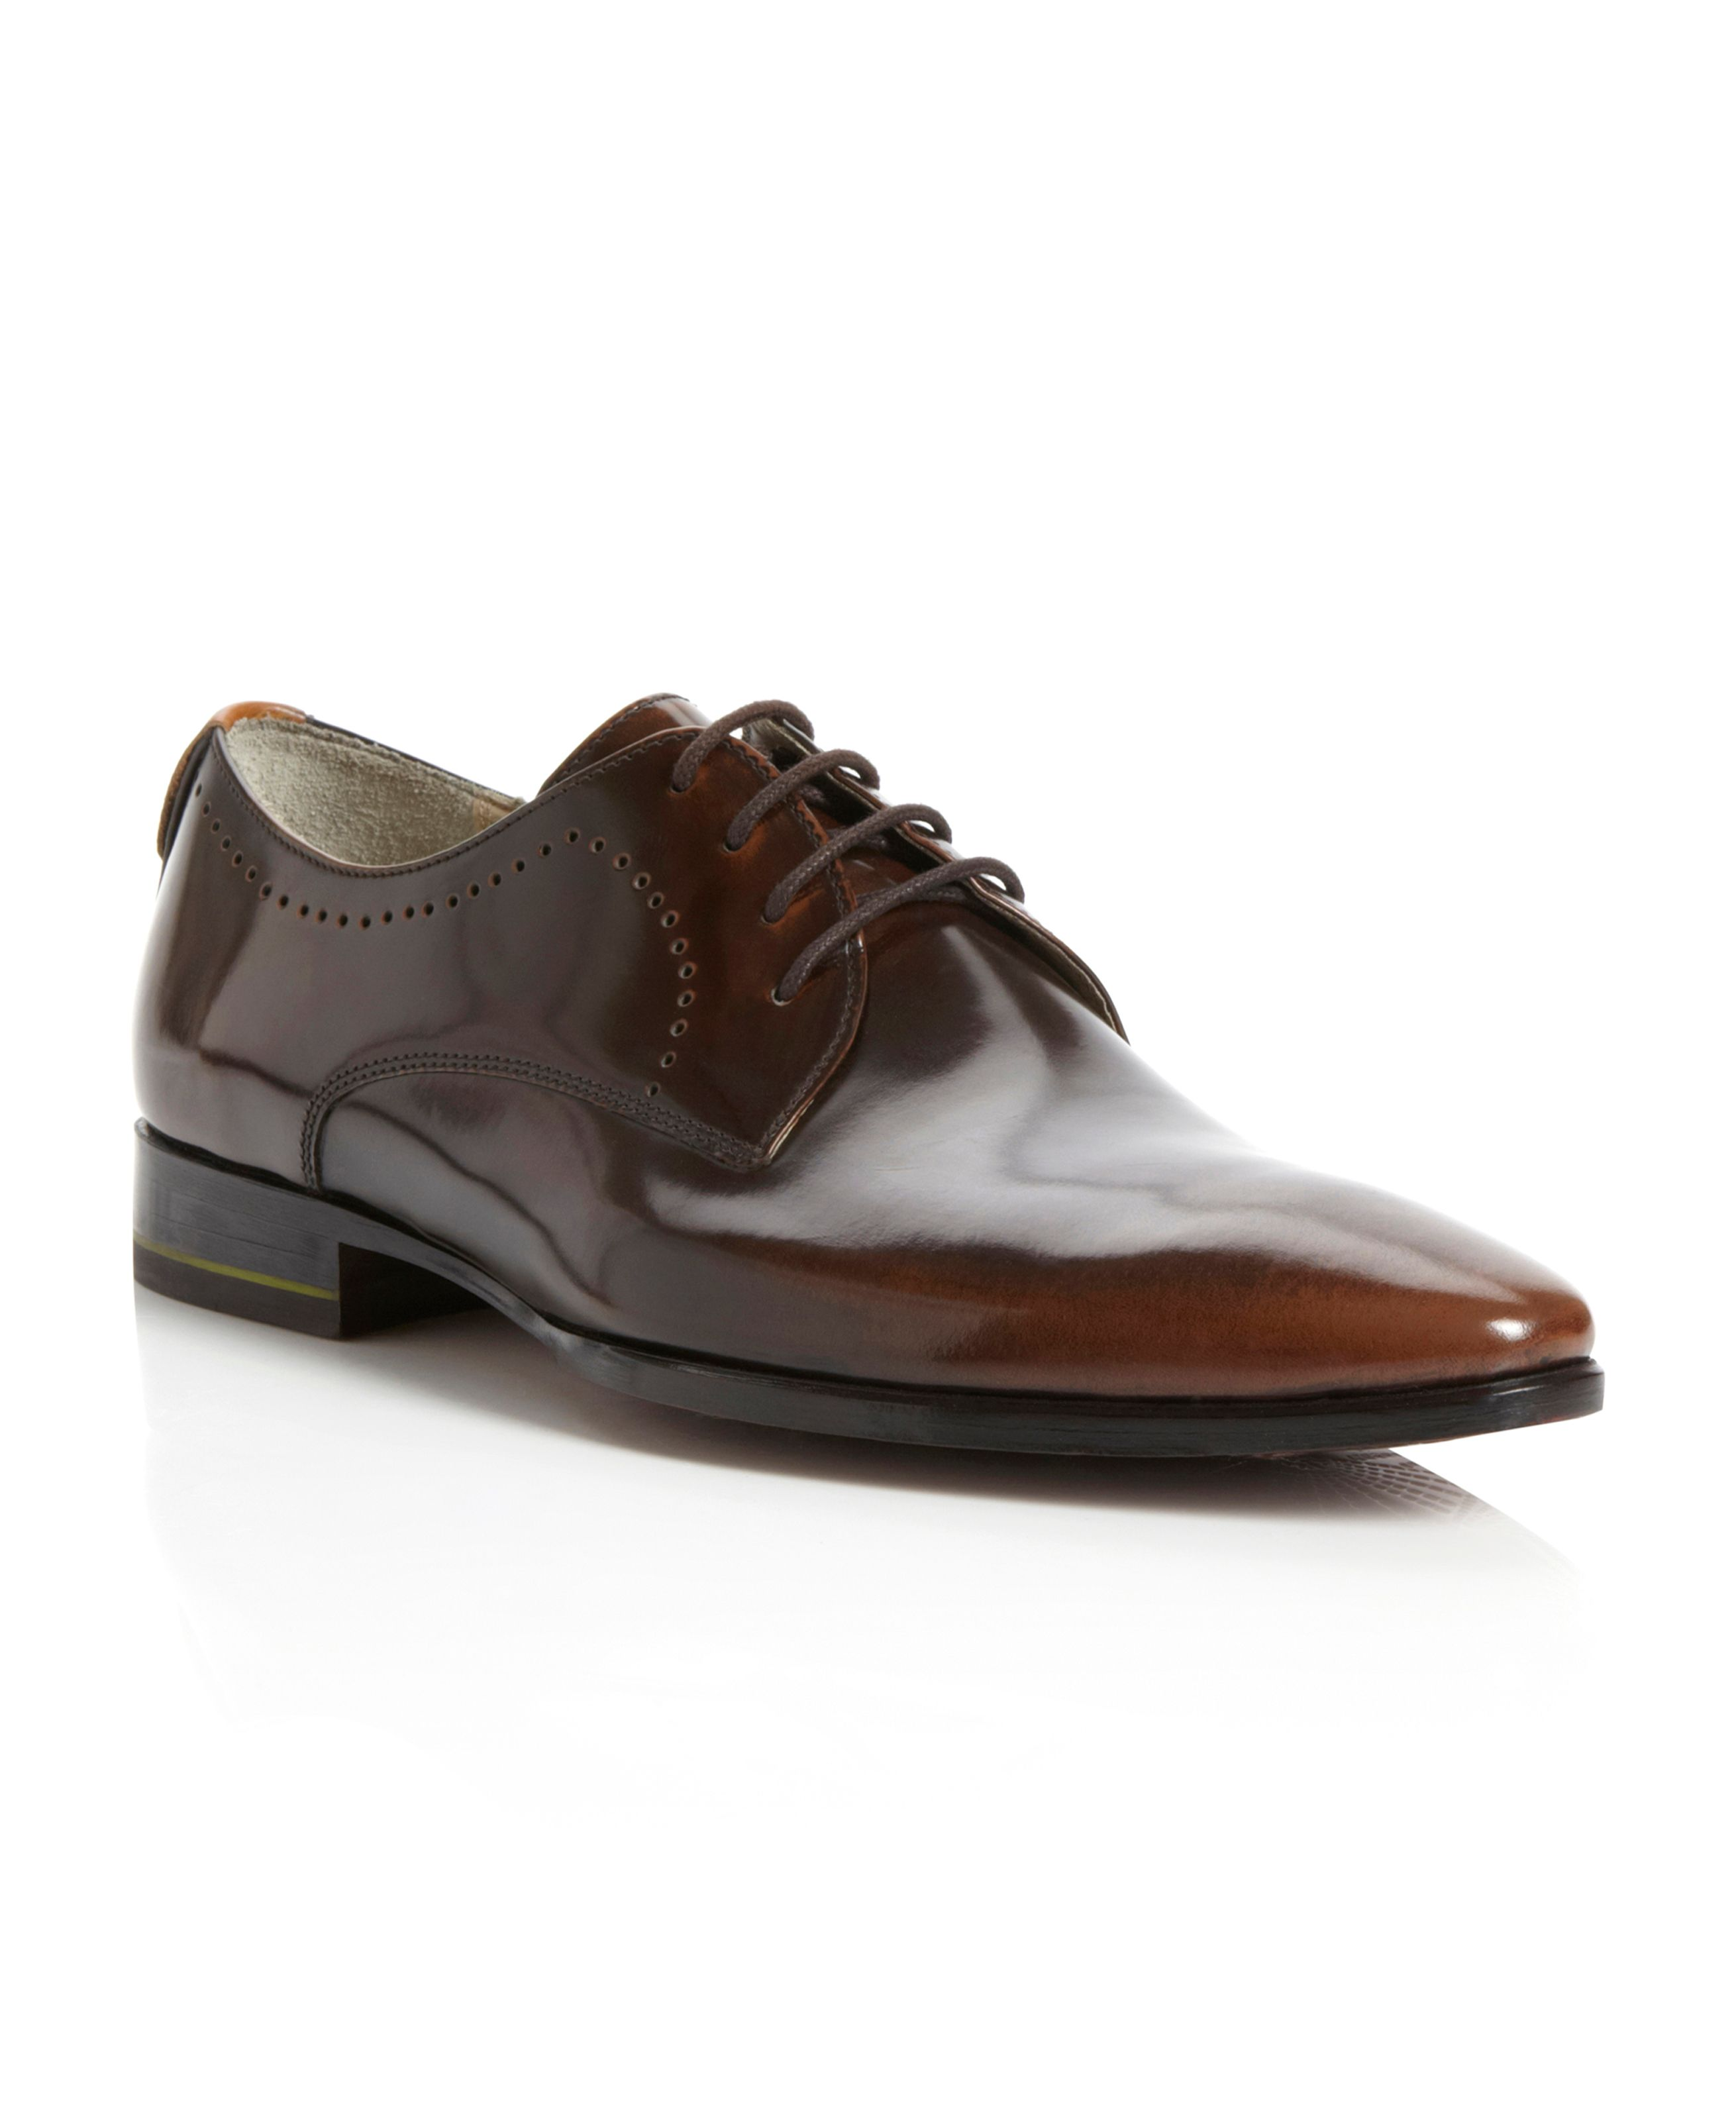 Branford punched detail formal shoes